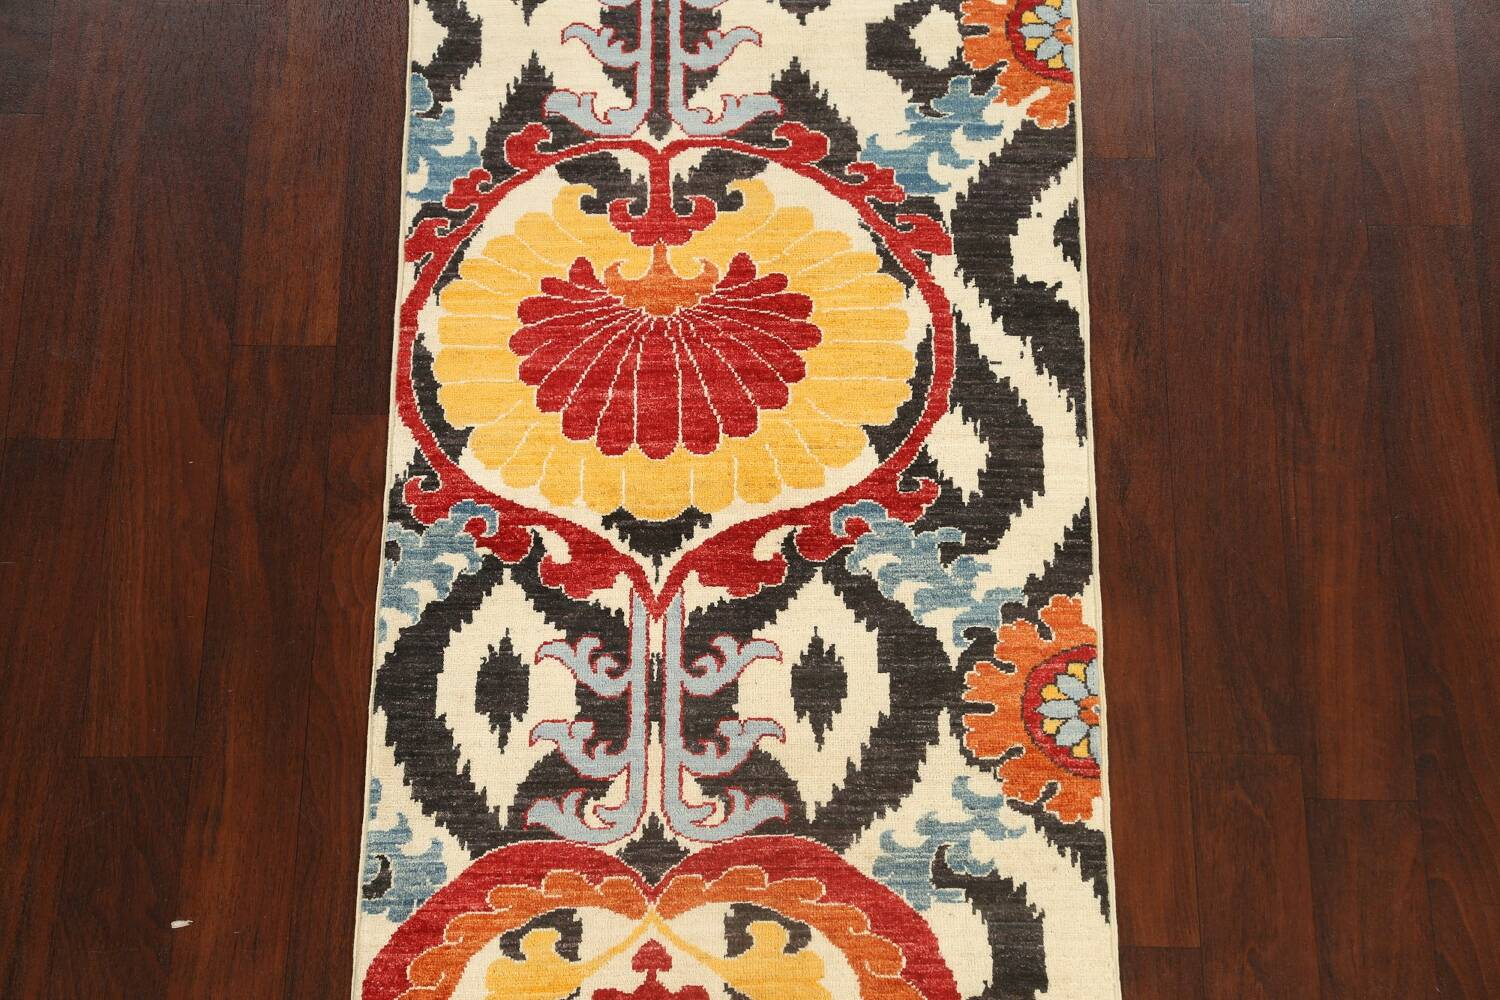 All-Over Floral IKats Oriental Runner Rug 3x8 image 3